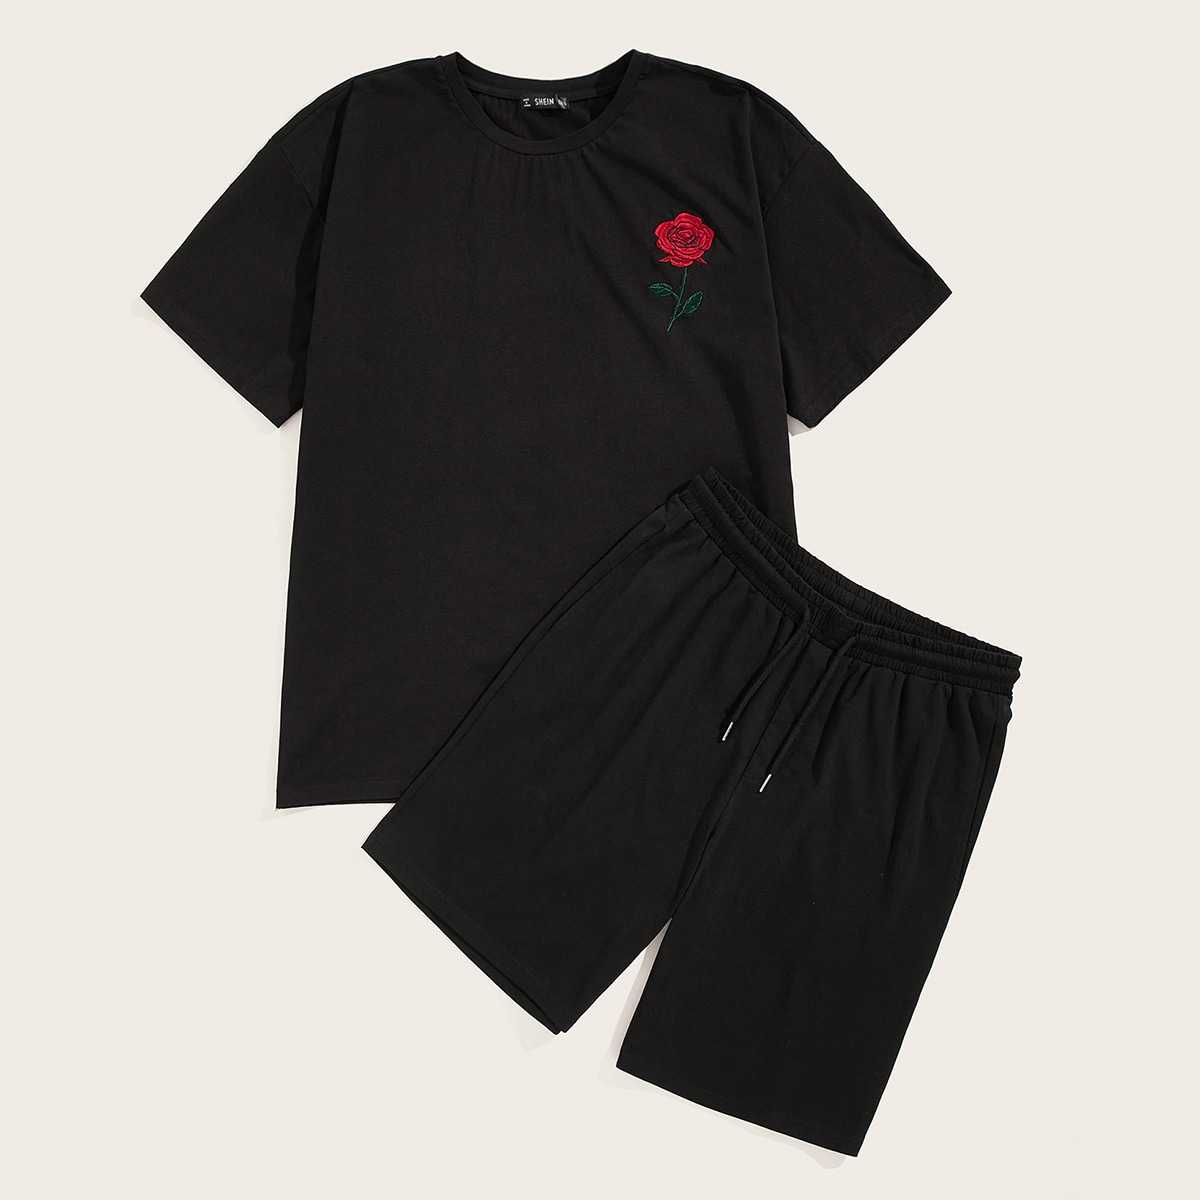 Guys Rose Embroidery Top & Drawstring Waist Shorts Set in Black by ROMWE on GOOFASH